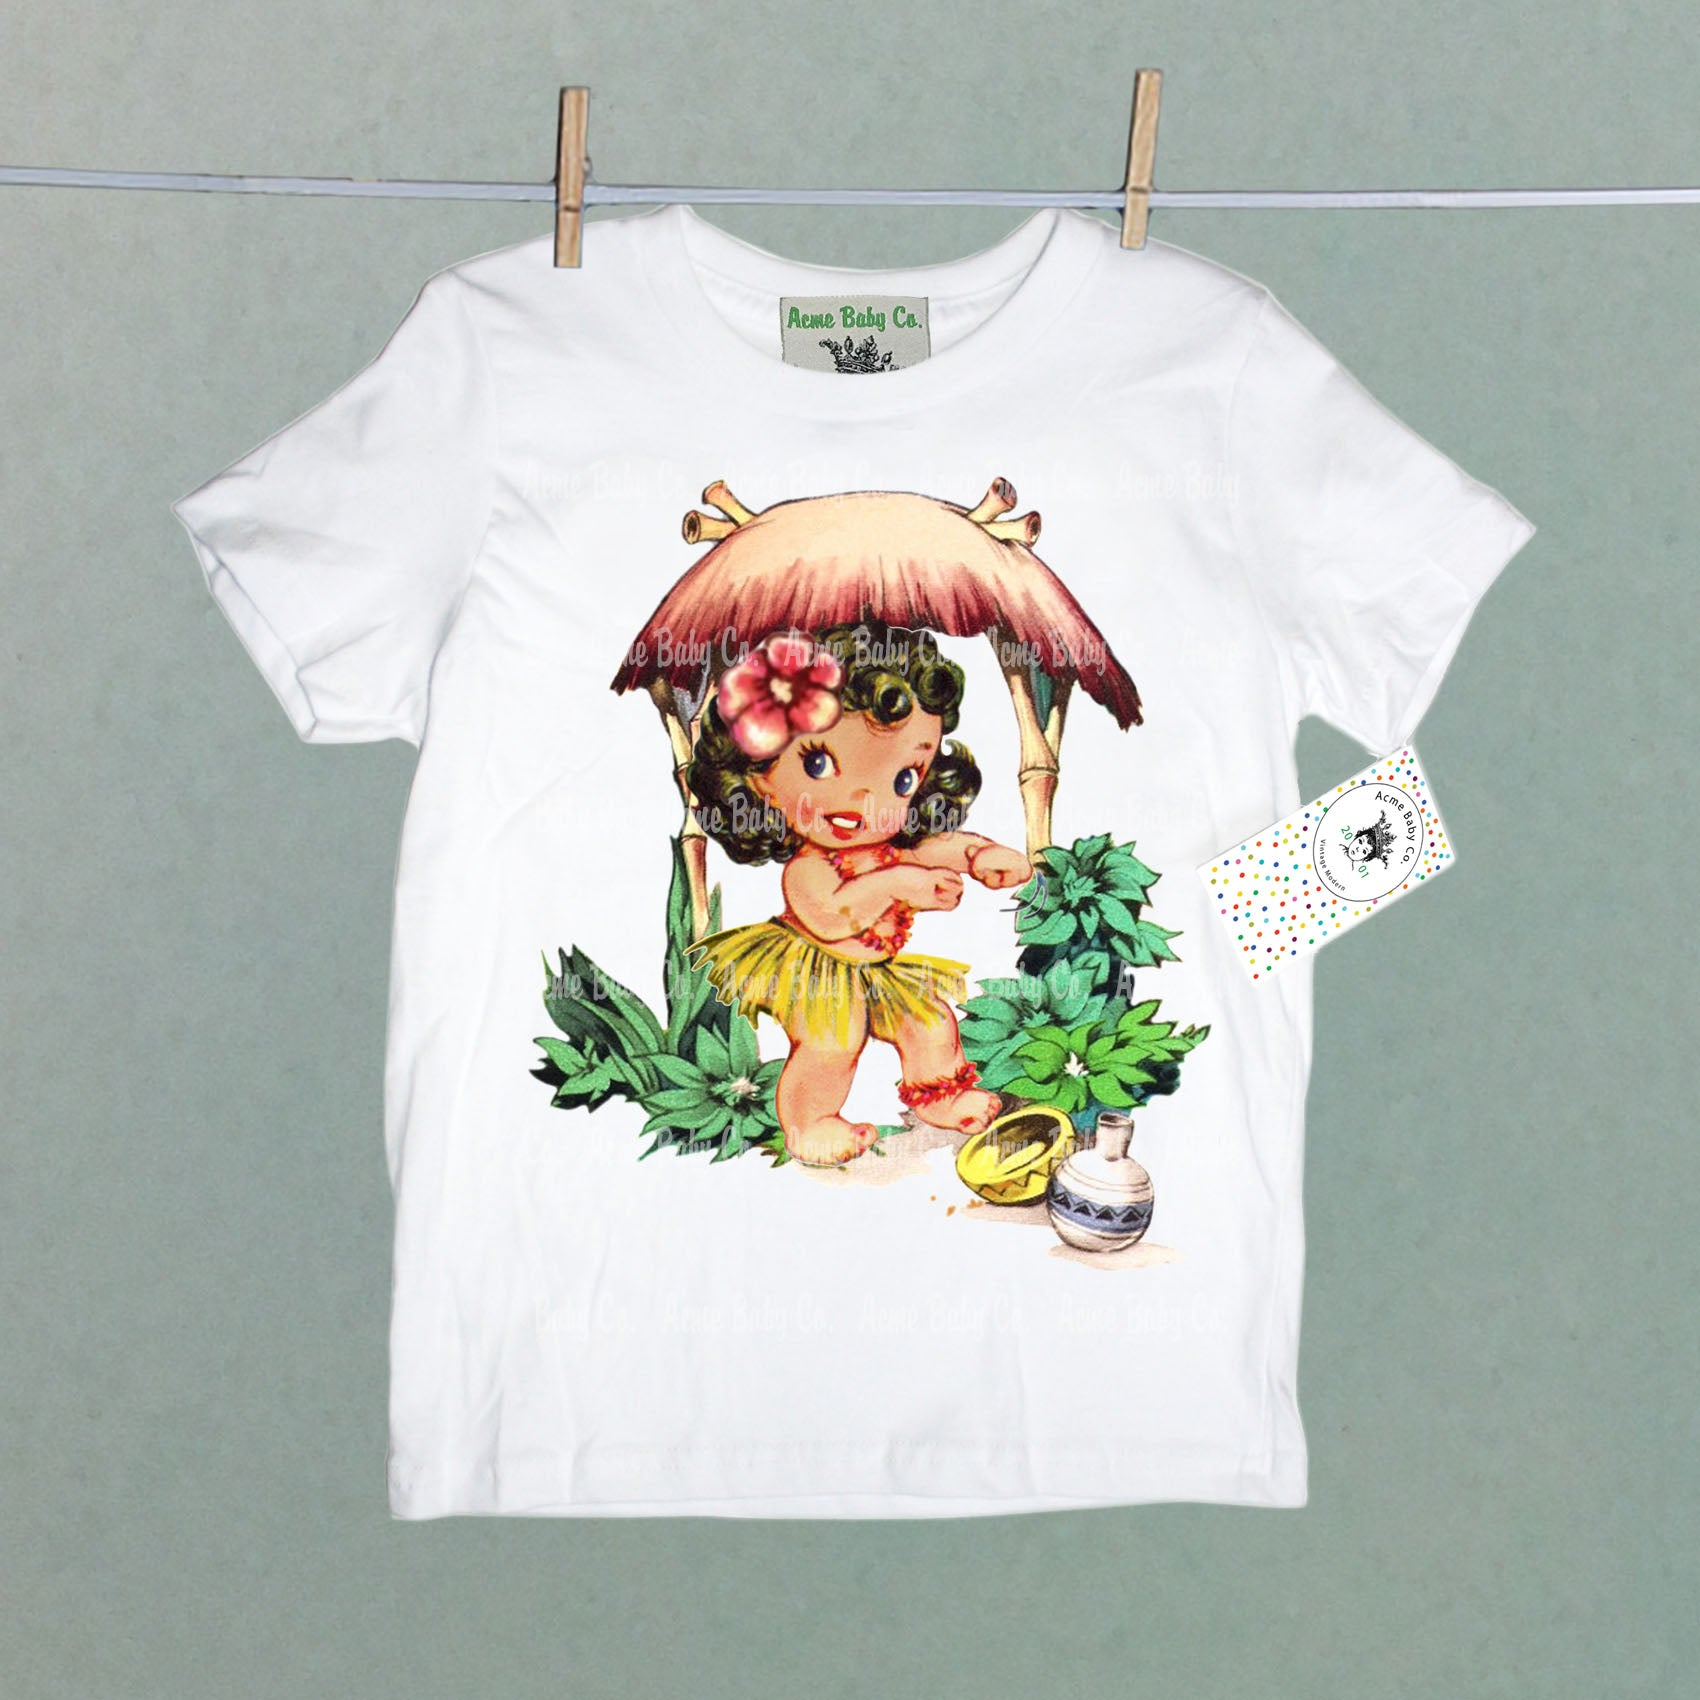 Organic Children's Shirt with Tiki Hula Girl